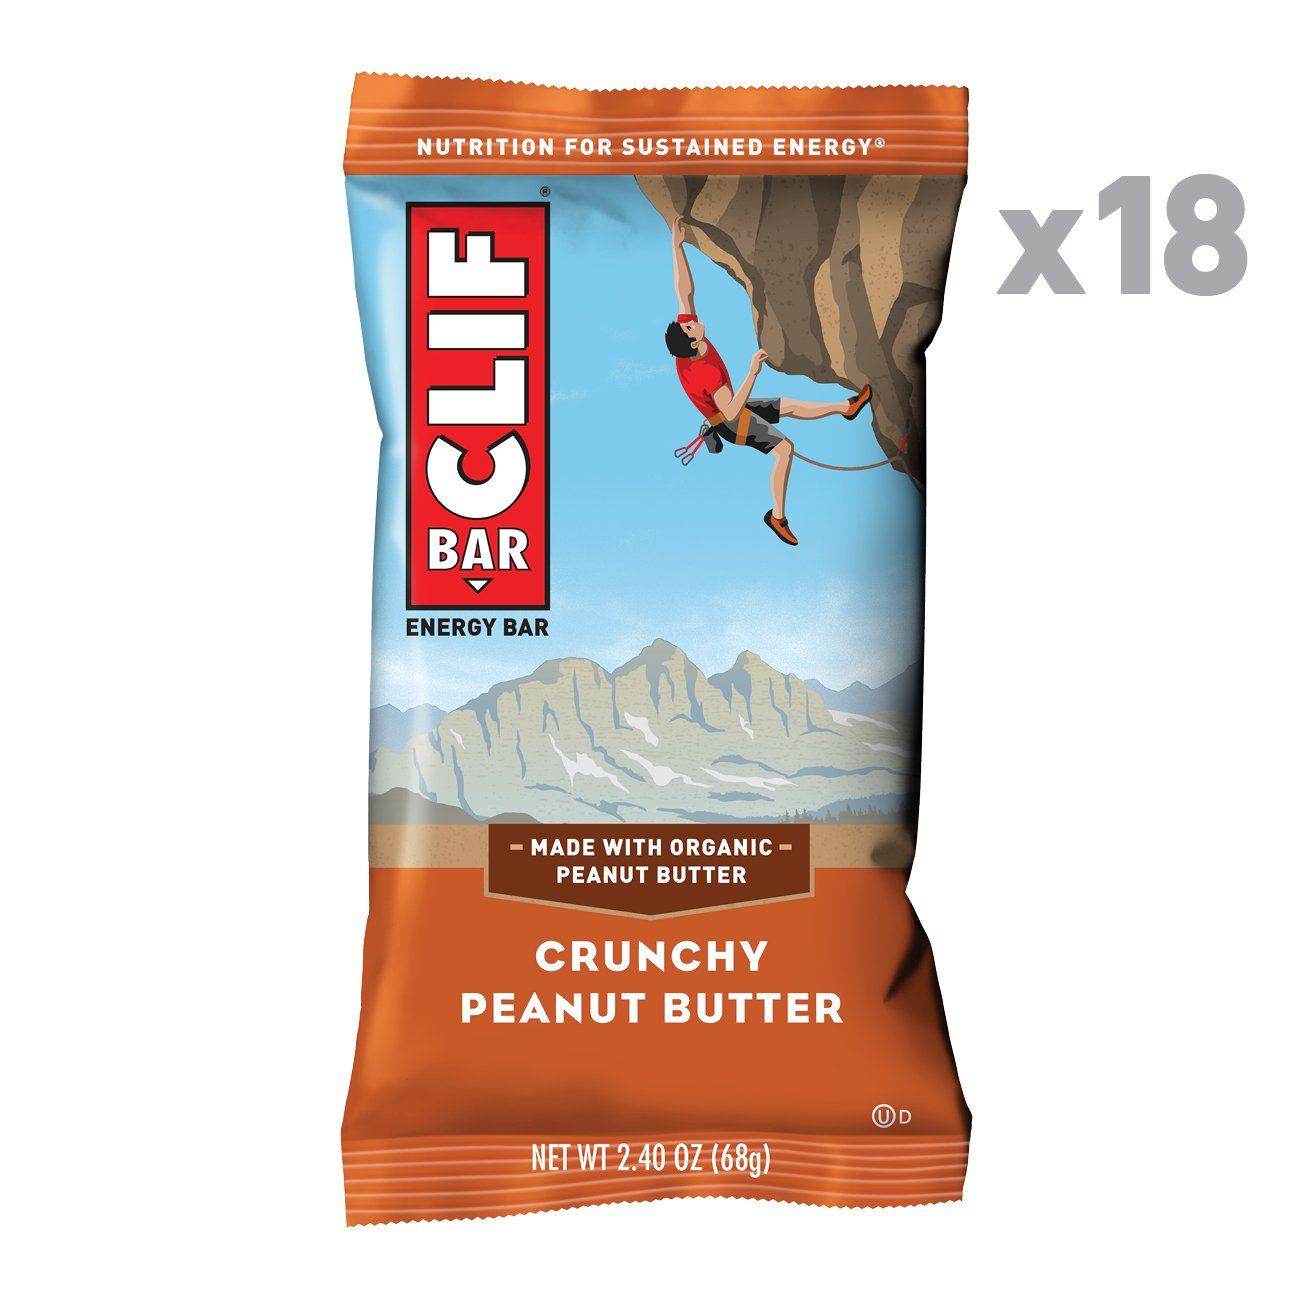 CLIF BAR Energy Bars, Crunchy Peanut Butter, 18 Count by Clif Bar